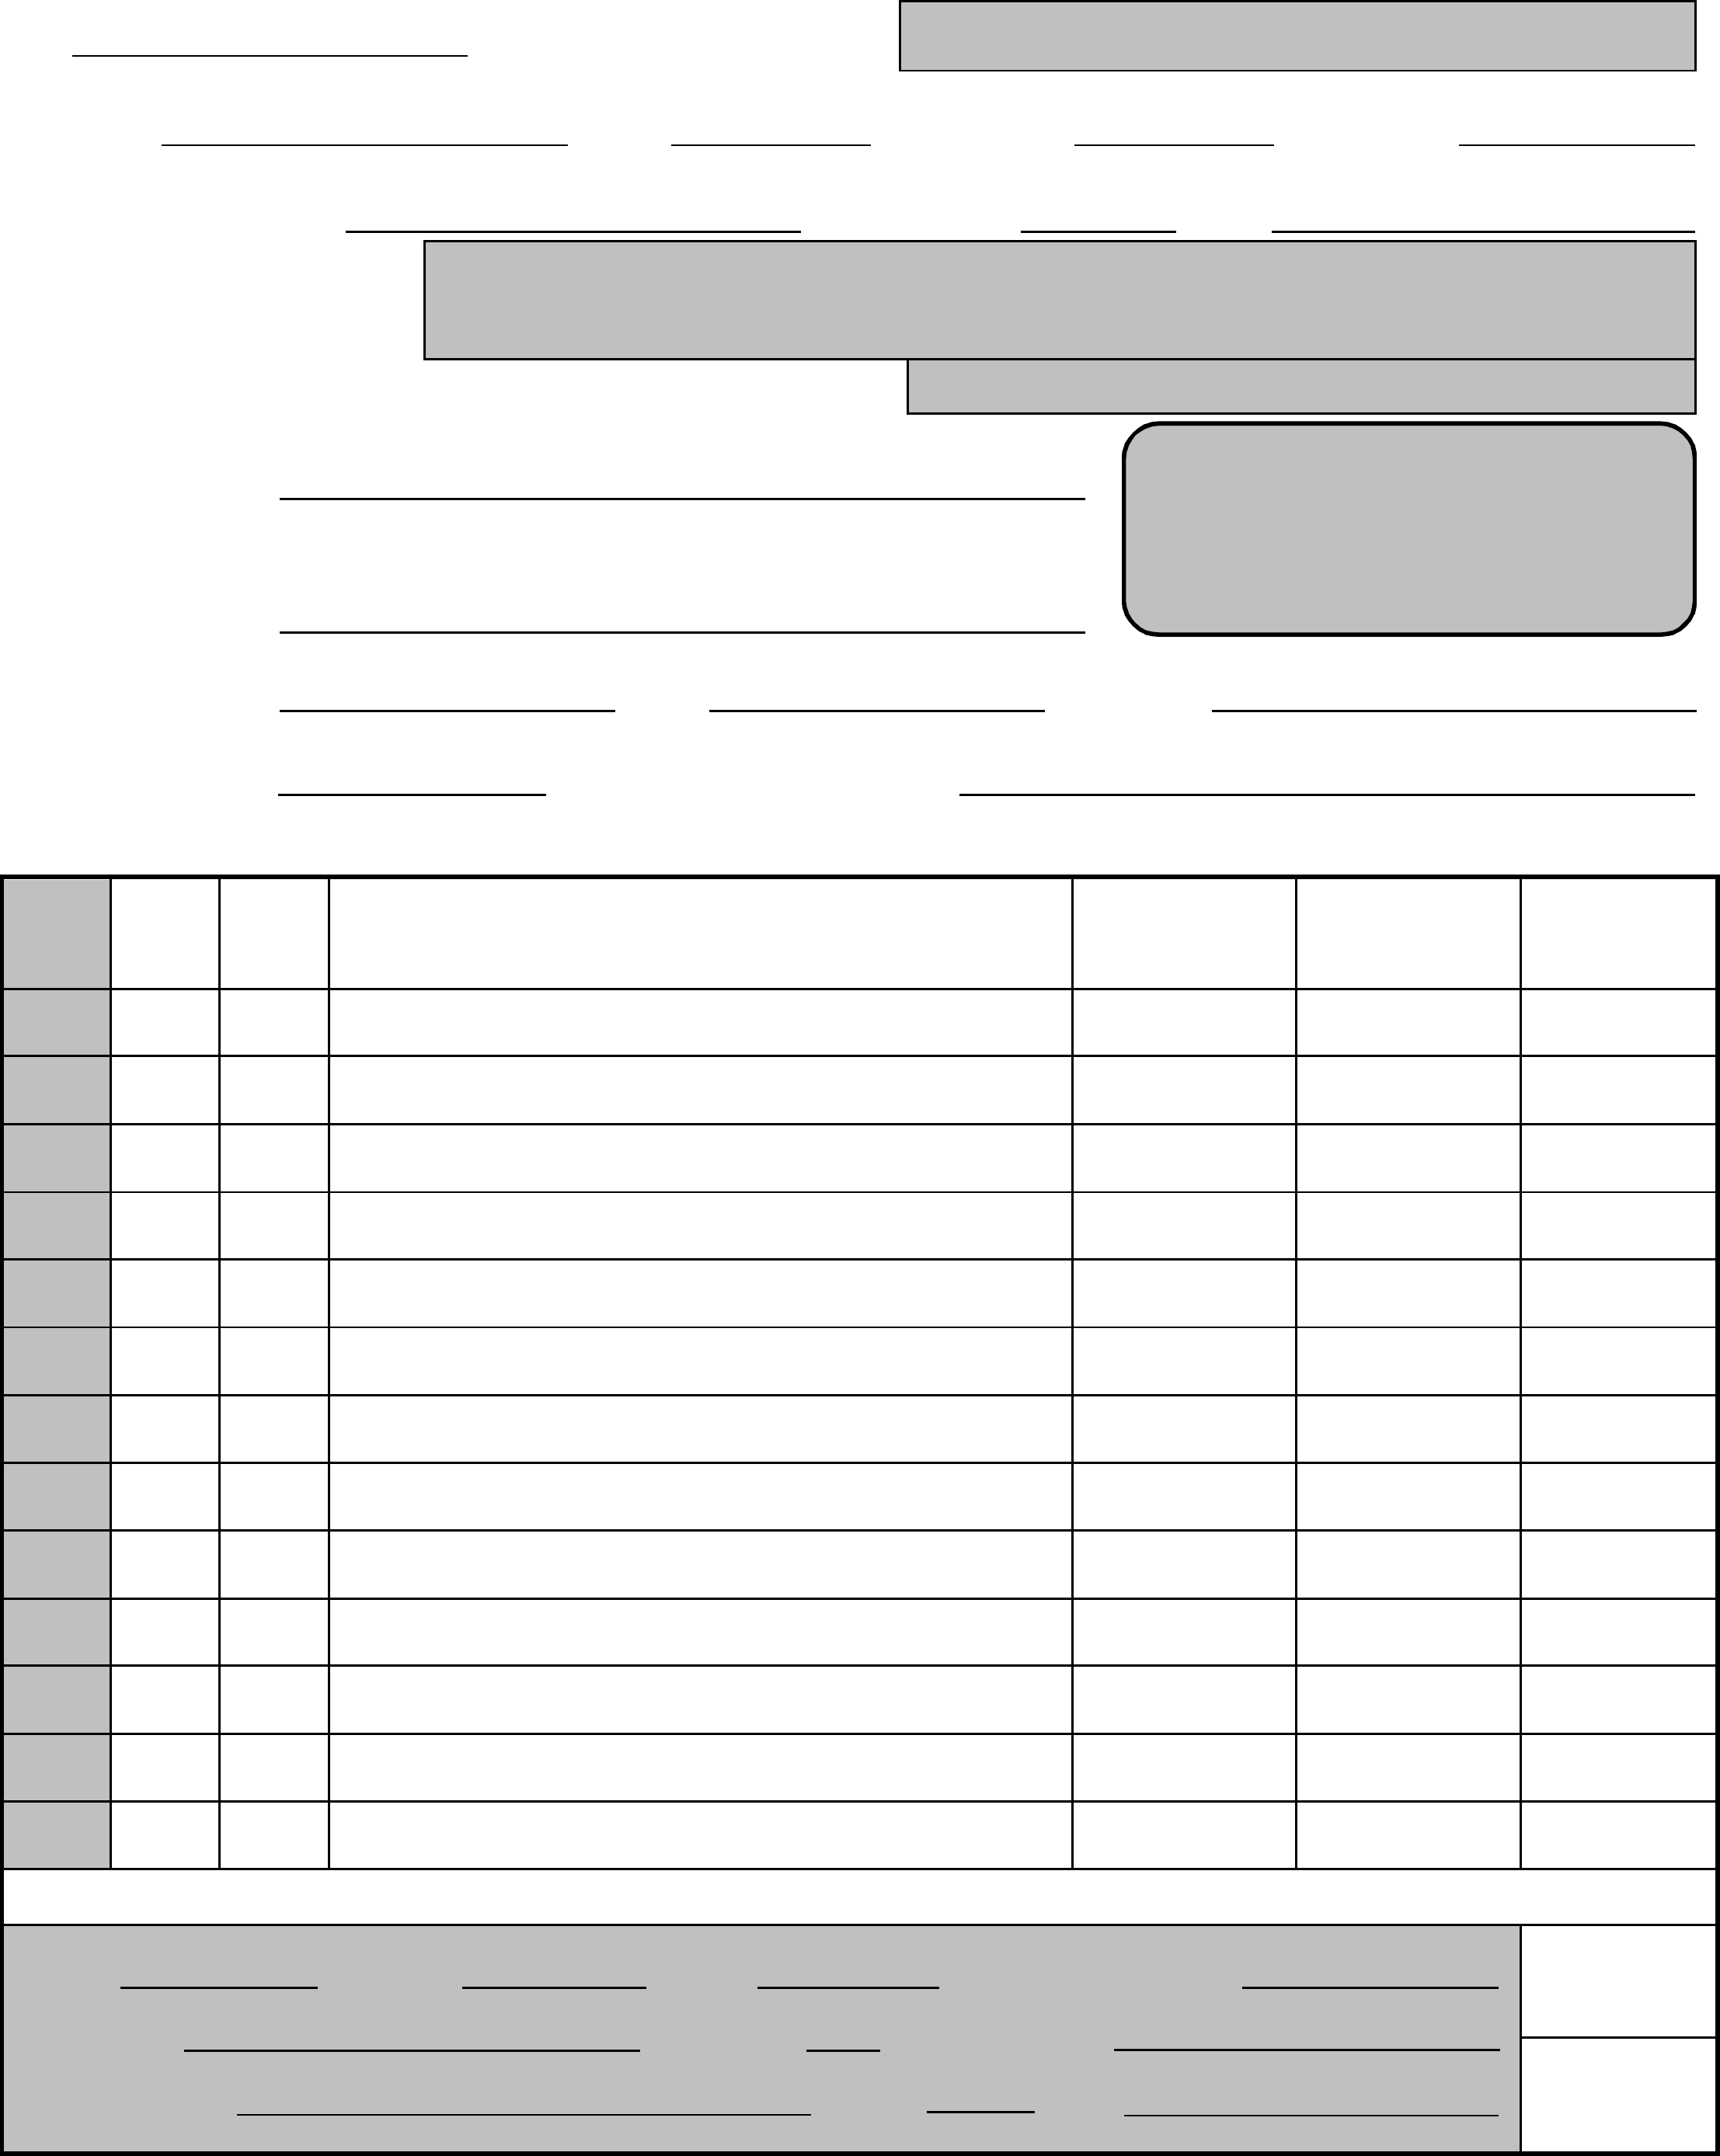 Purchase Order Request Form Sample Free Download – Purchase Order Forms Free